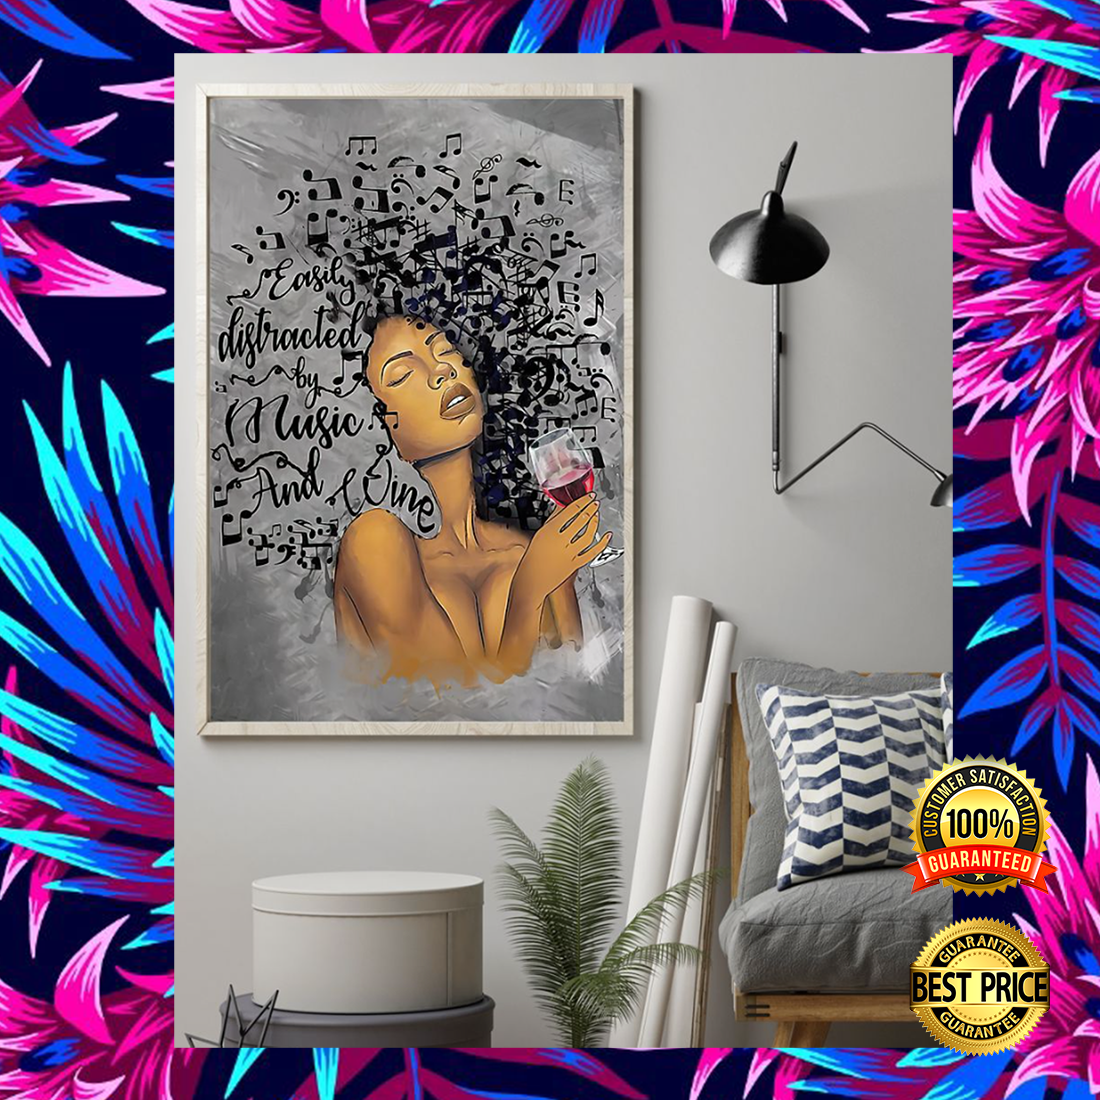 Black woman easily distracted by music and wine poster 5